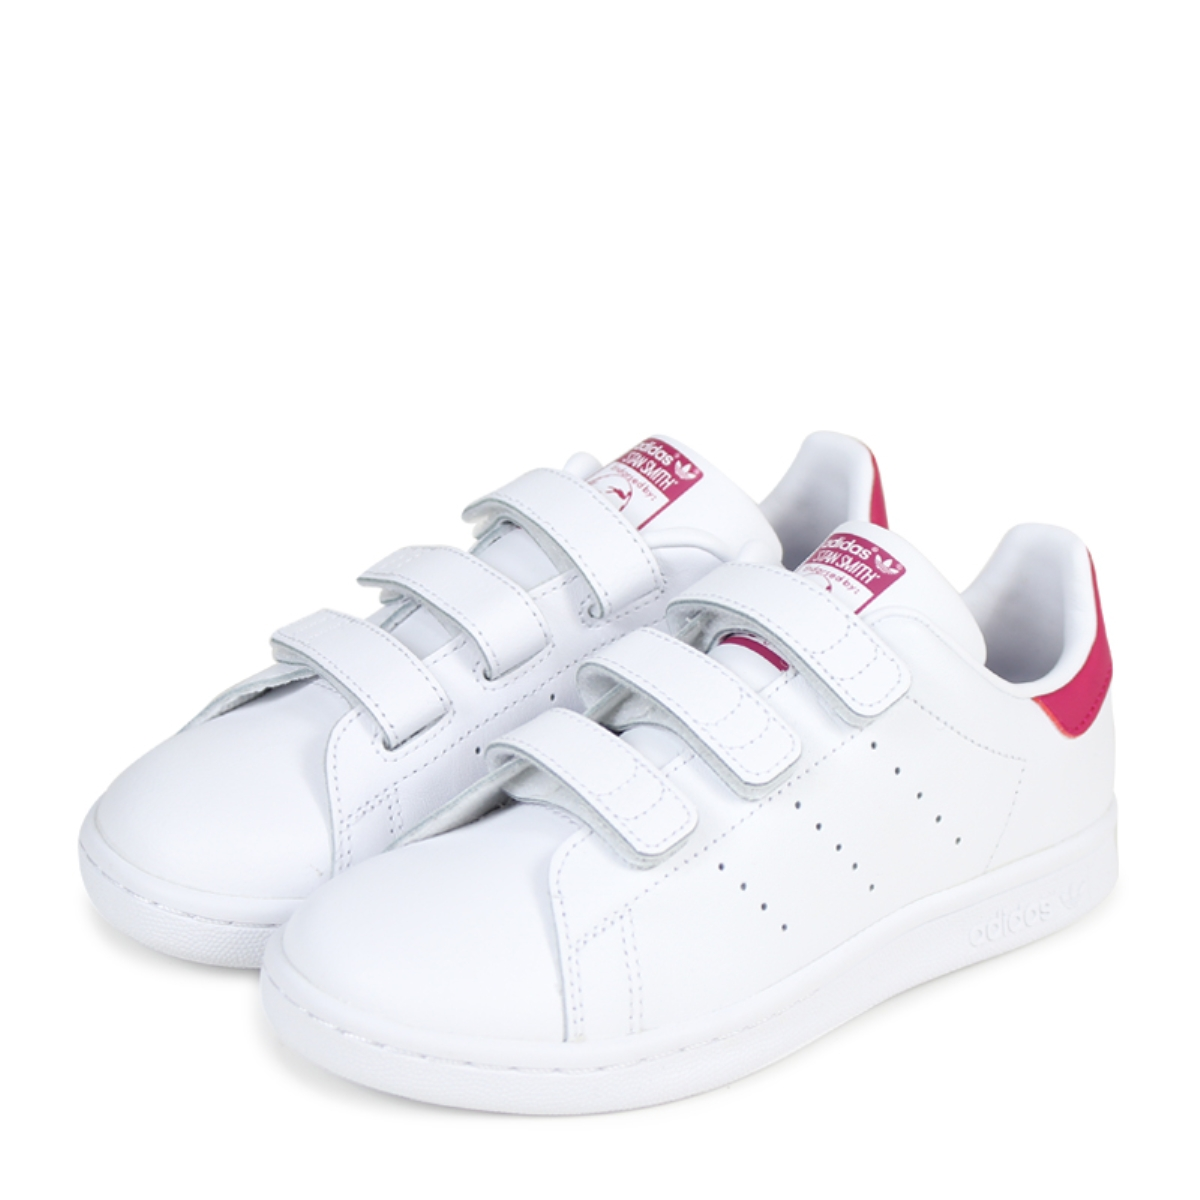 adidas originals stan smith cf sneakers in white